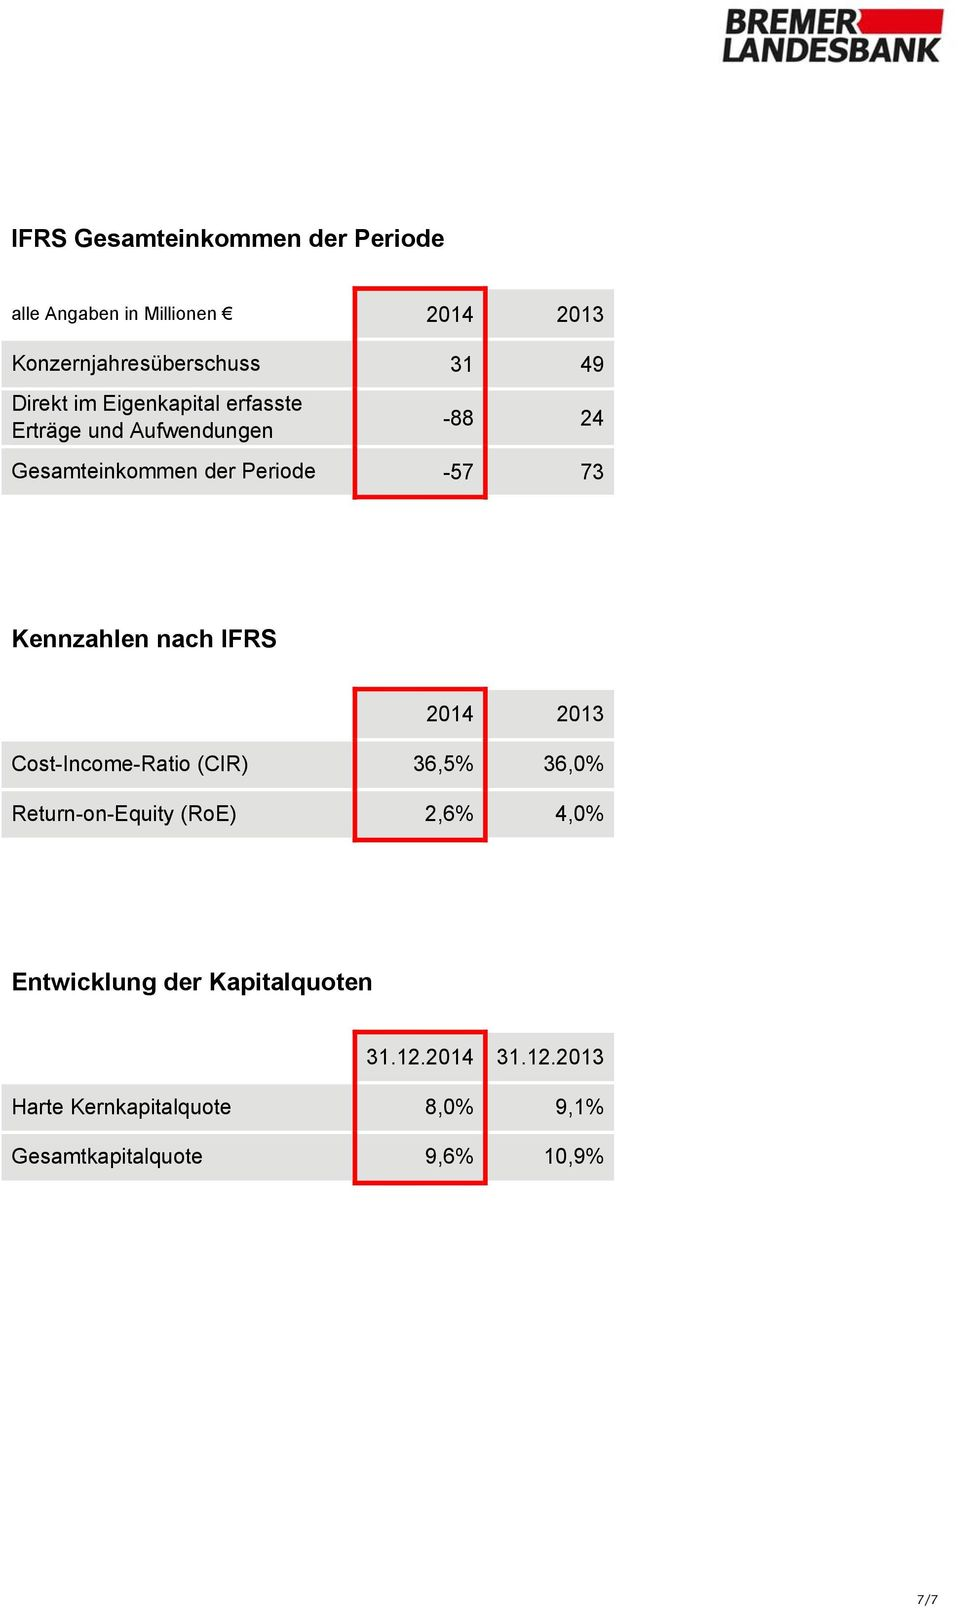 Kennzahlen nach IFRS 2014 2013 Cost-Income-Ratio (CIR) 36,5% 36,0% Return-on-Equity (RoE) 2,6% 4,0%